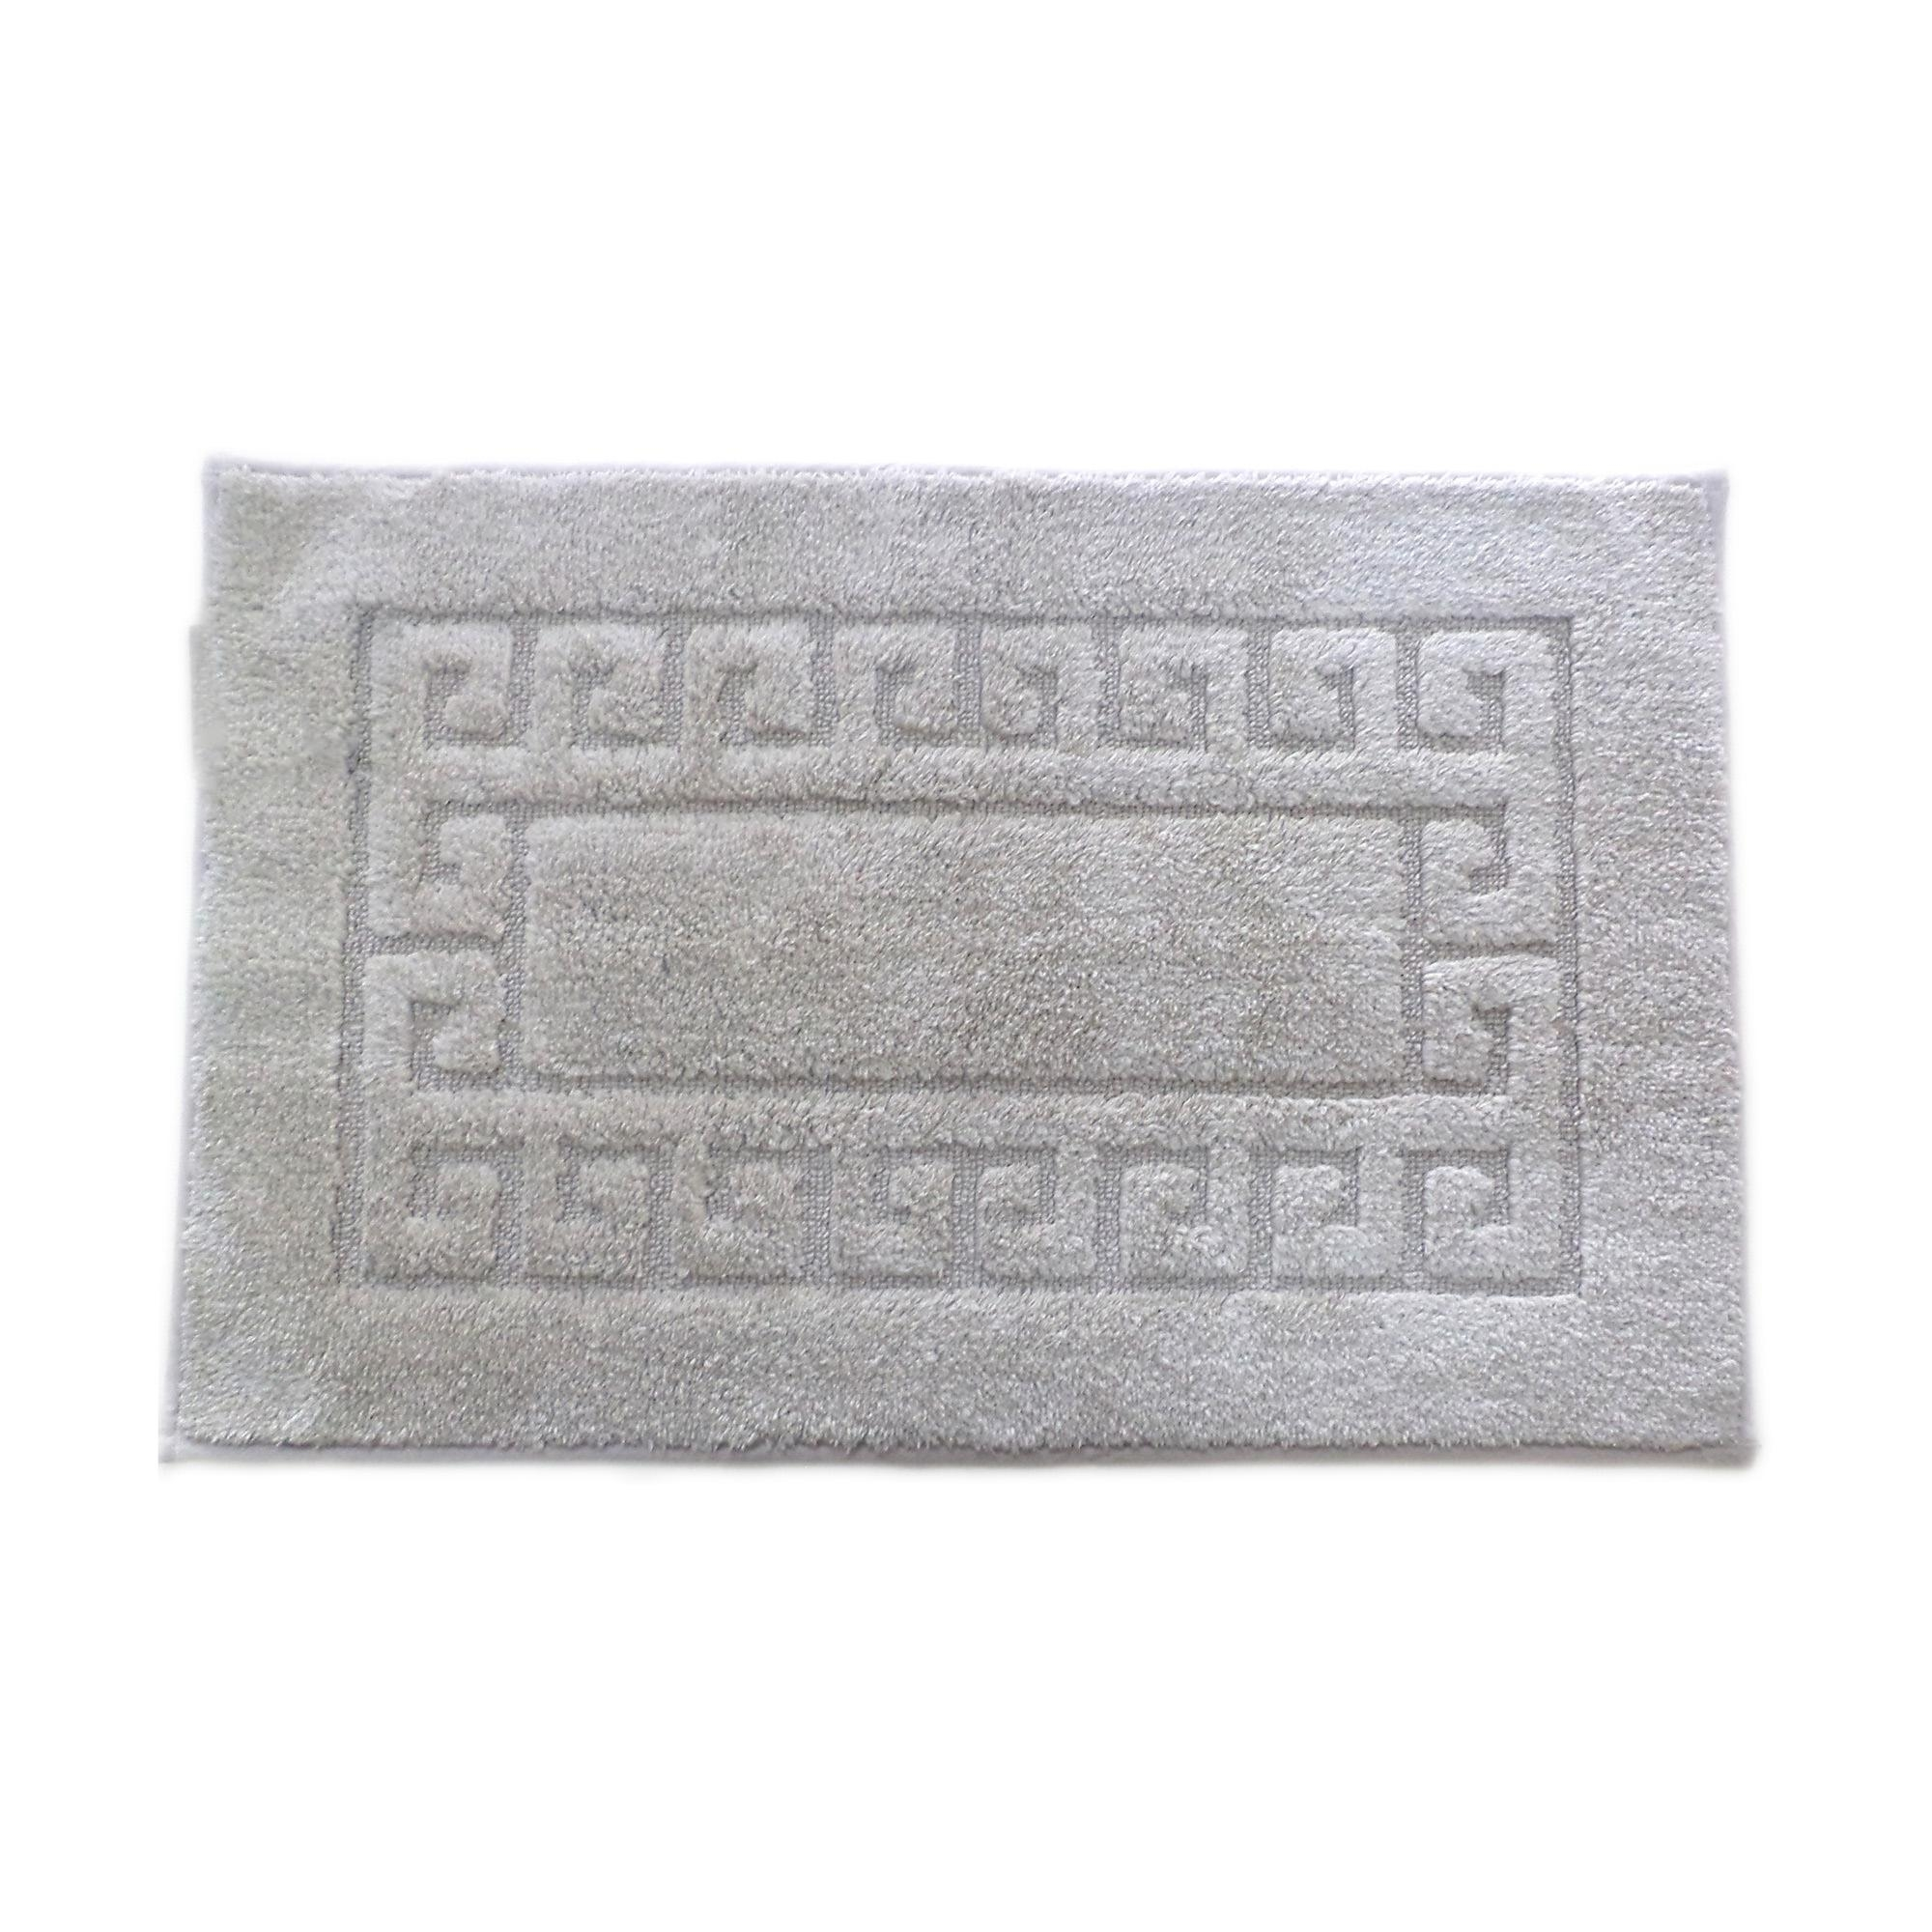 Dunelm Bath And Pedestal Mats